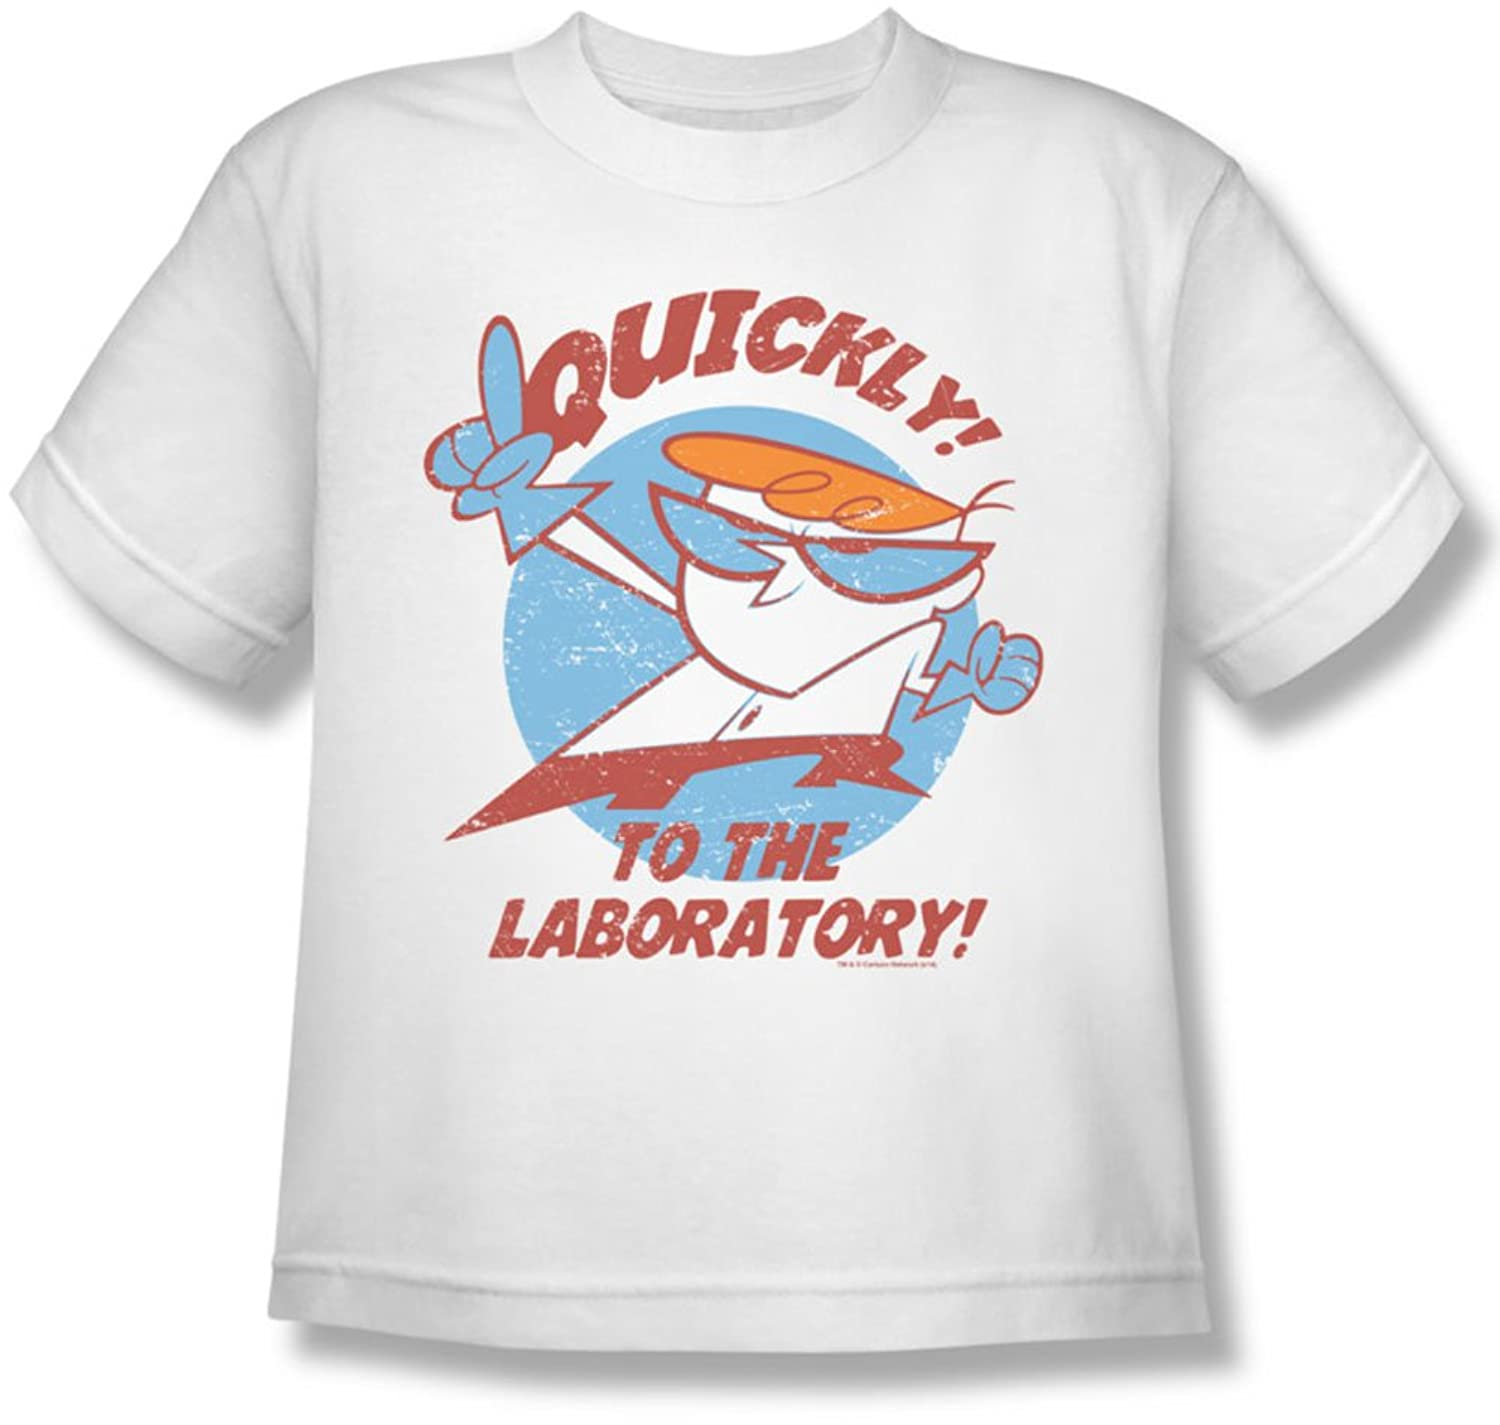 Dexter's Laboratory - Youth Quickly T-Shirt